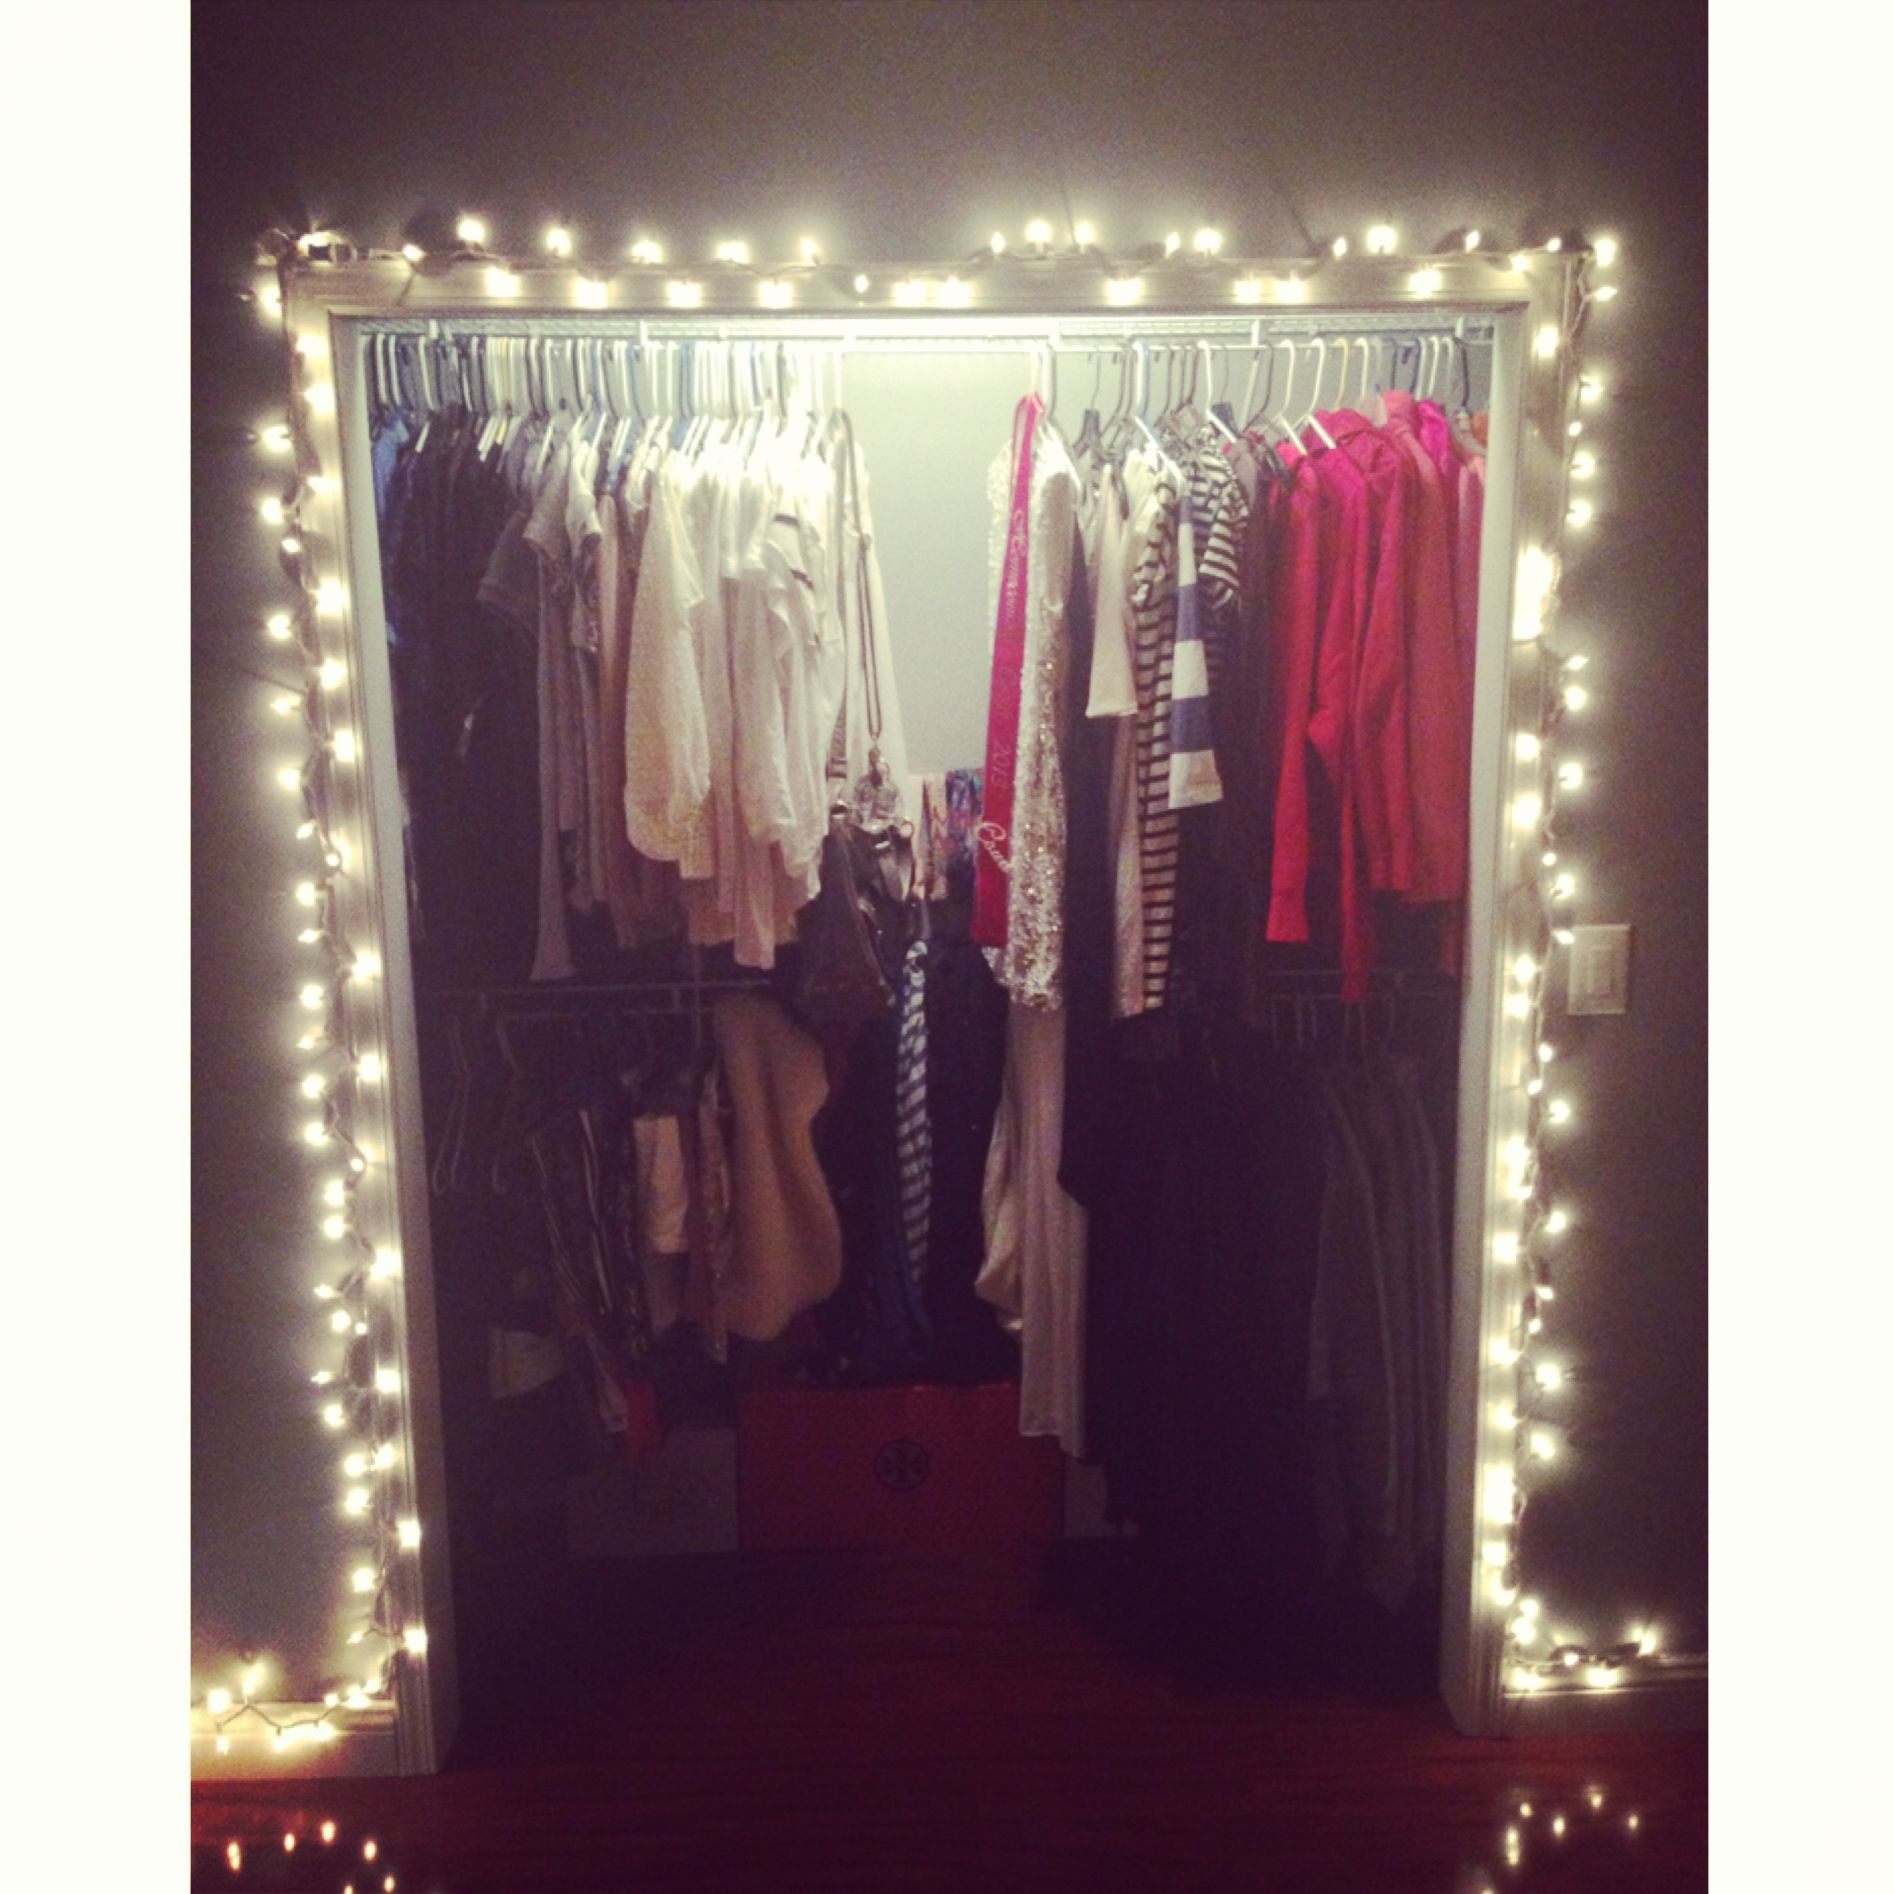 Cheap Easy Hacks To Update Your Home For Closet Redo - Where can i buy string lights for my bedroom